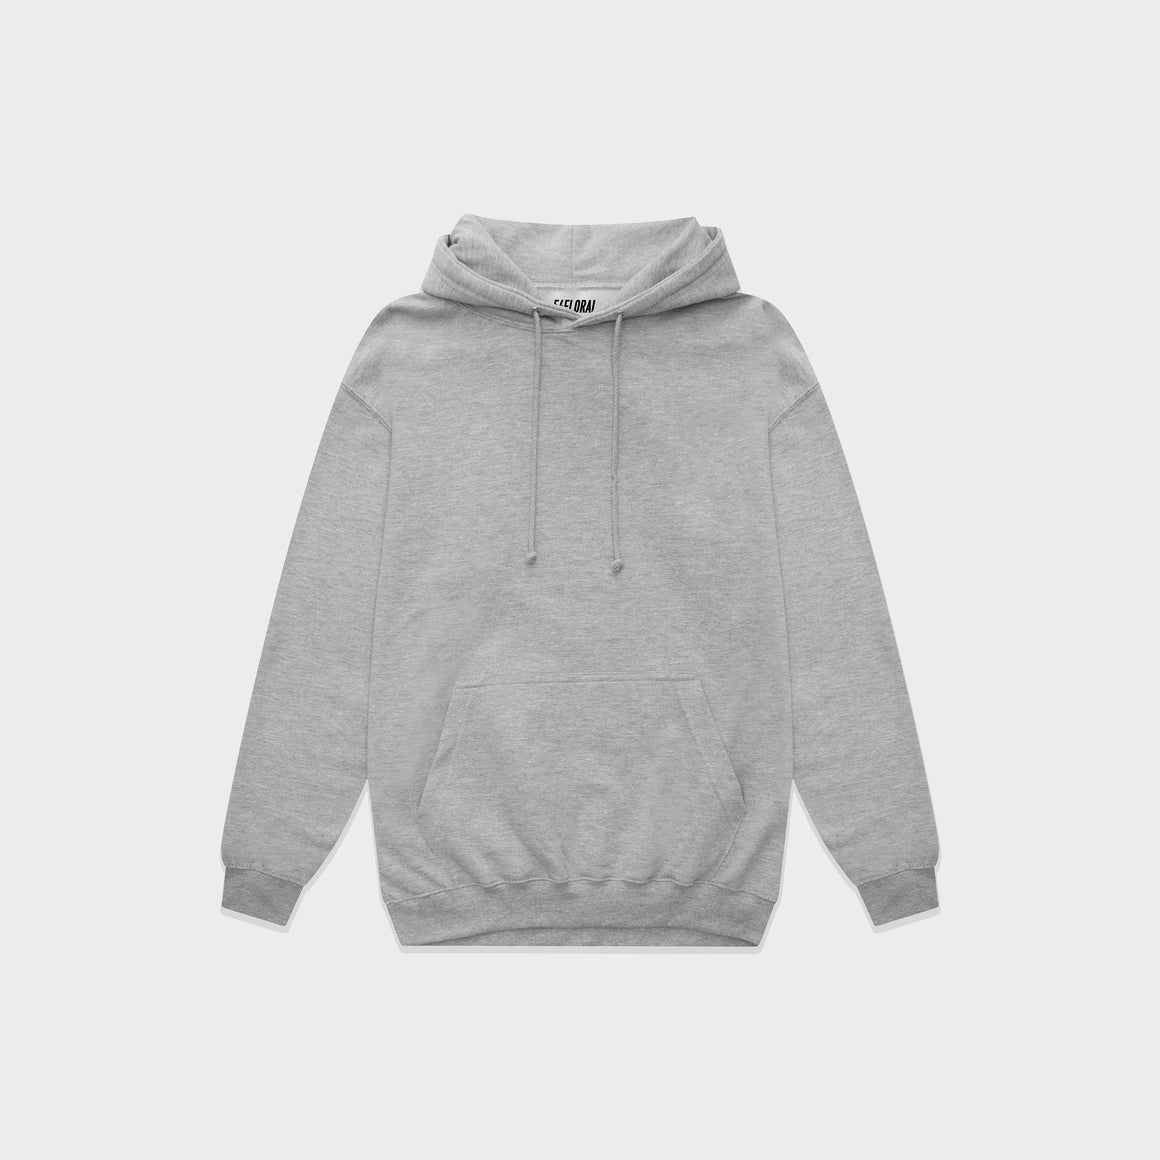 UNBRANDED ESSENTIAL PULLOVER HOODY | HEATHER GREY